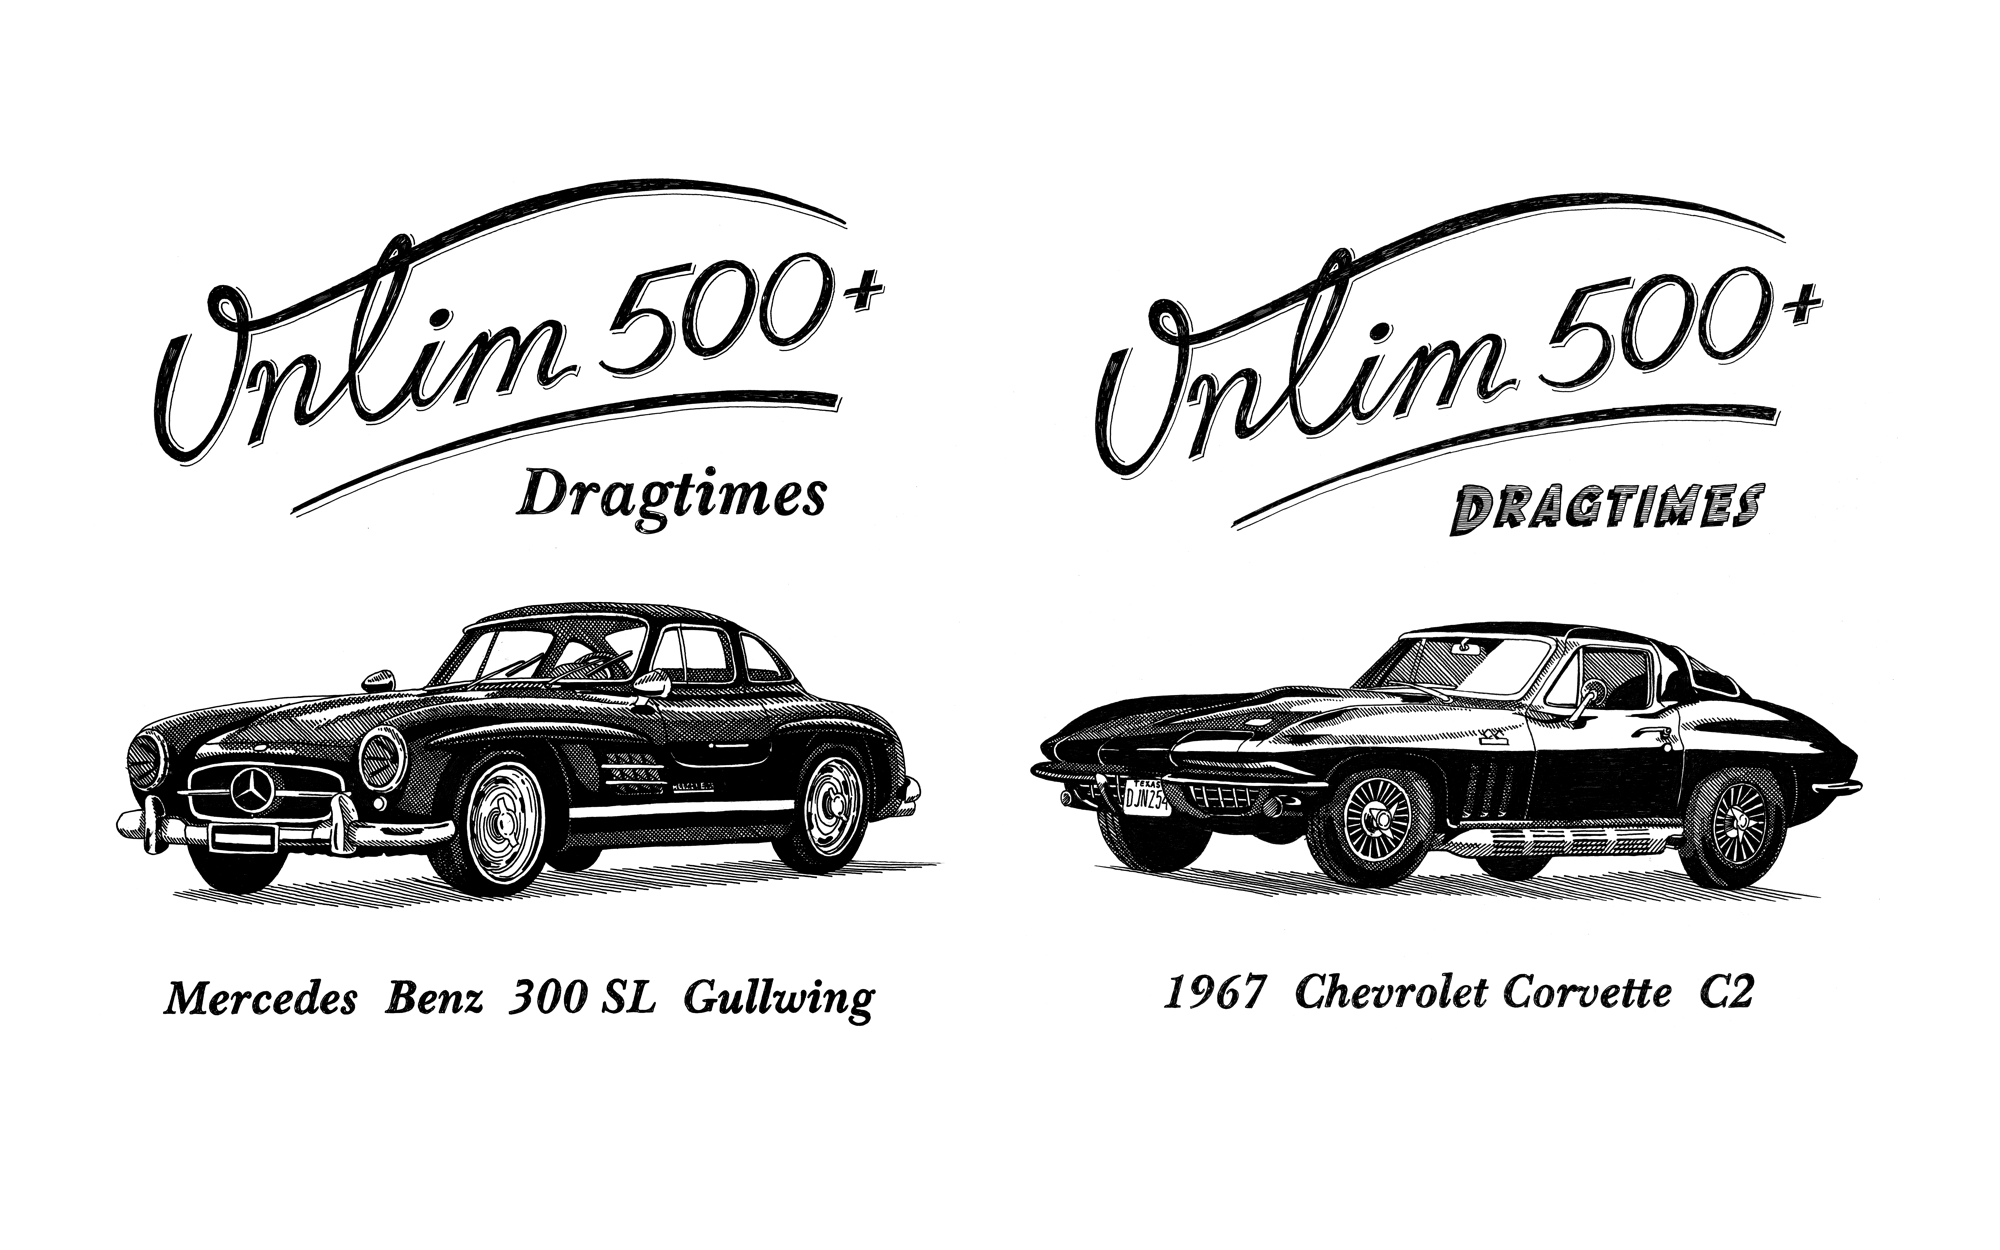 Oldtimer illustrations: Chevrolet Corvette and Mersedes Benz 300 SL Gullwing